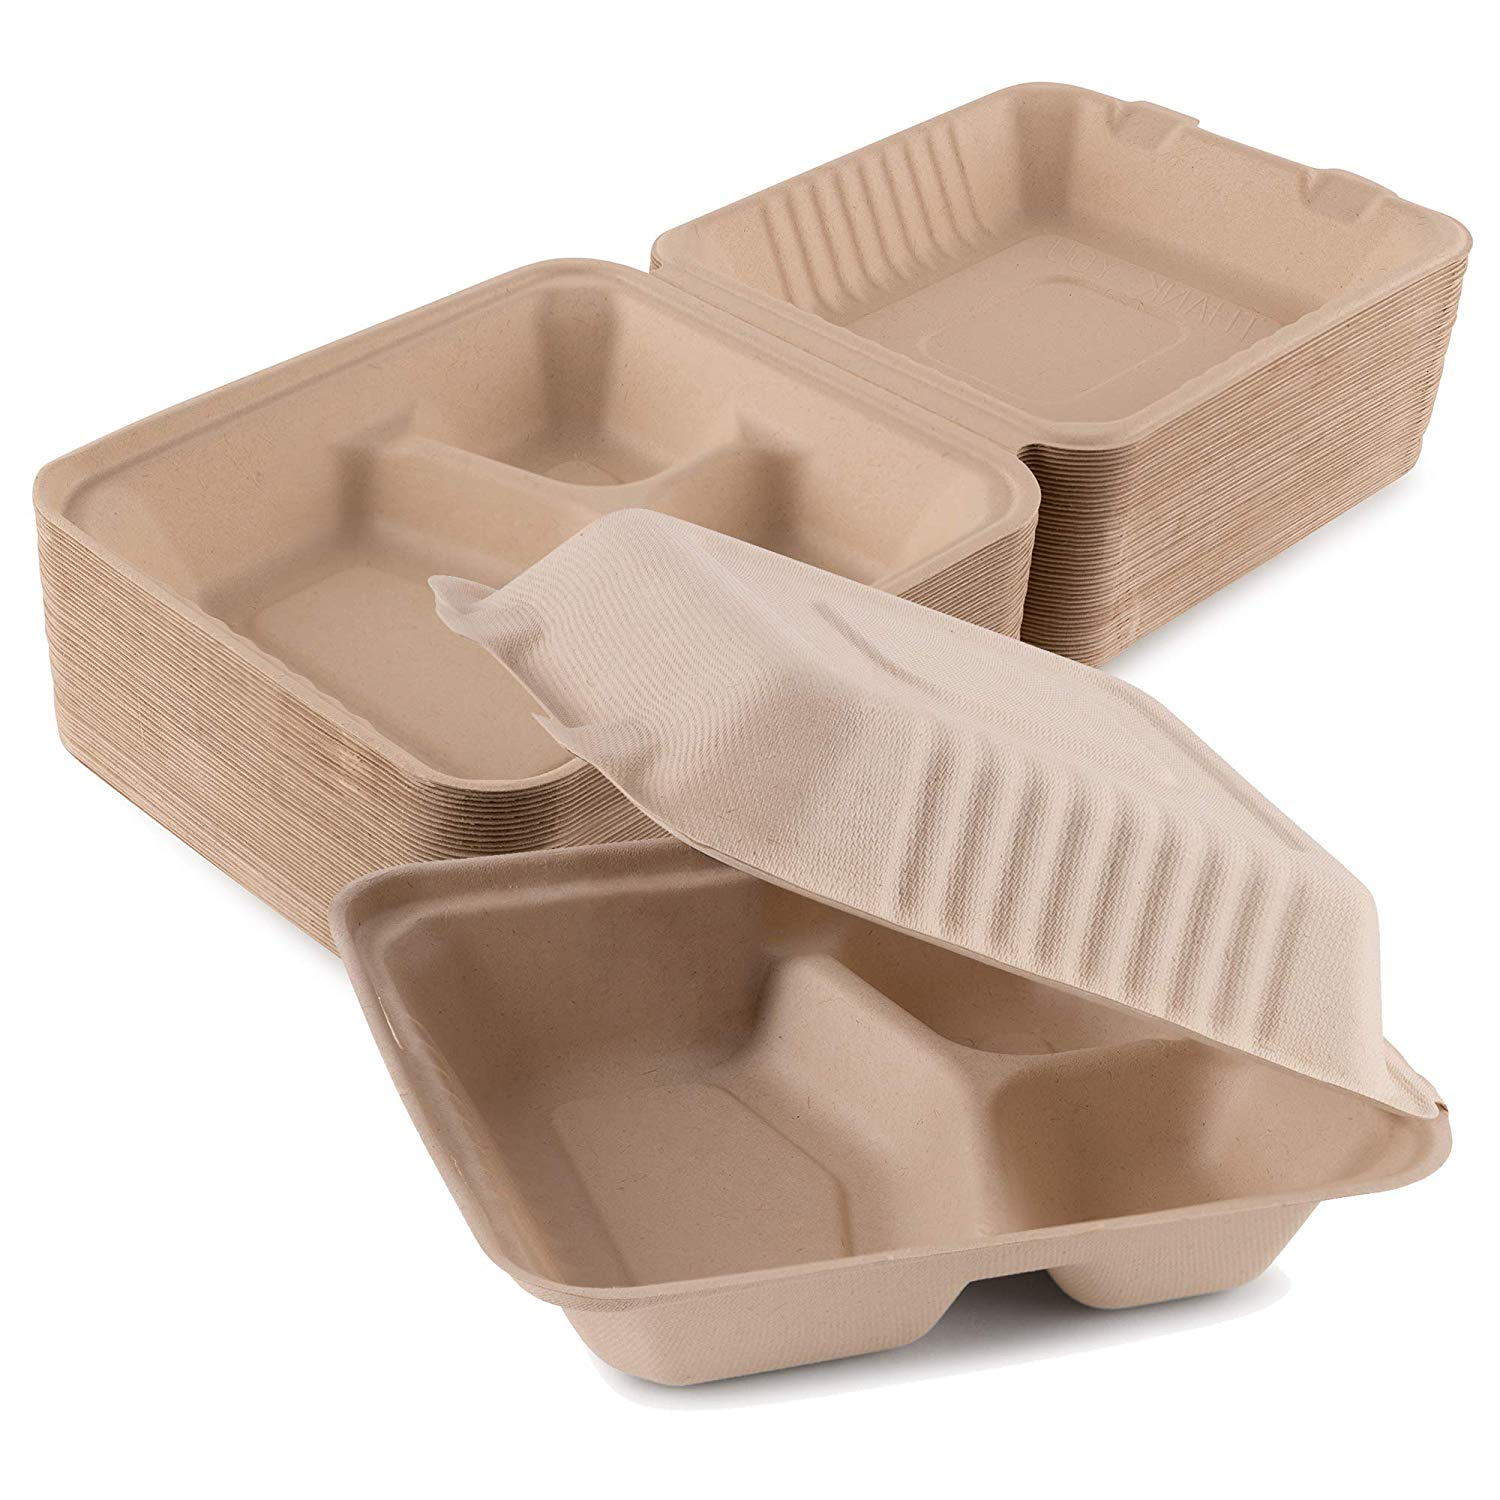 Cardboard meal prep containers.